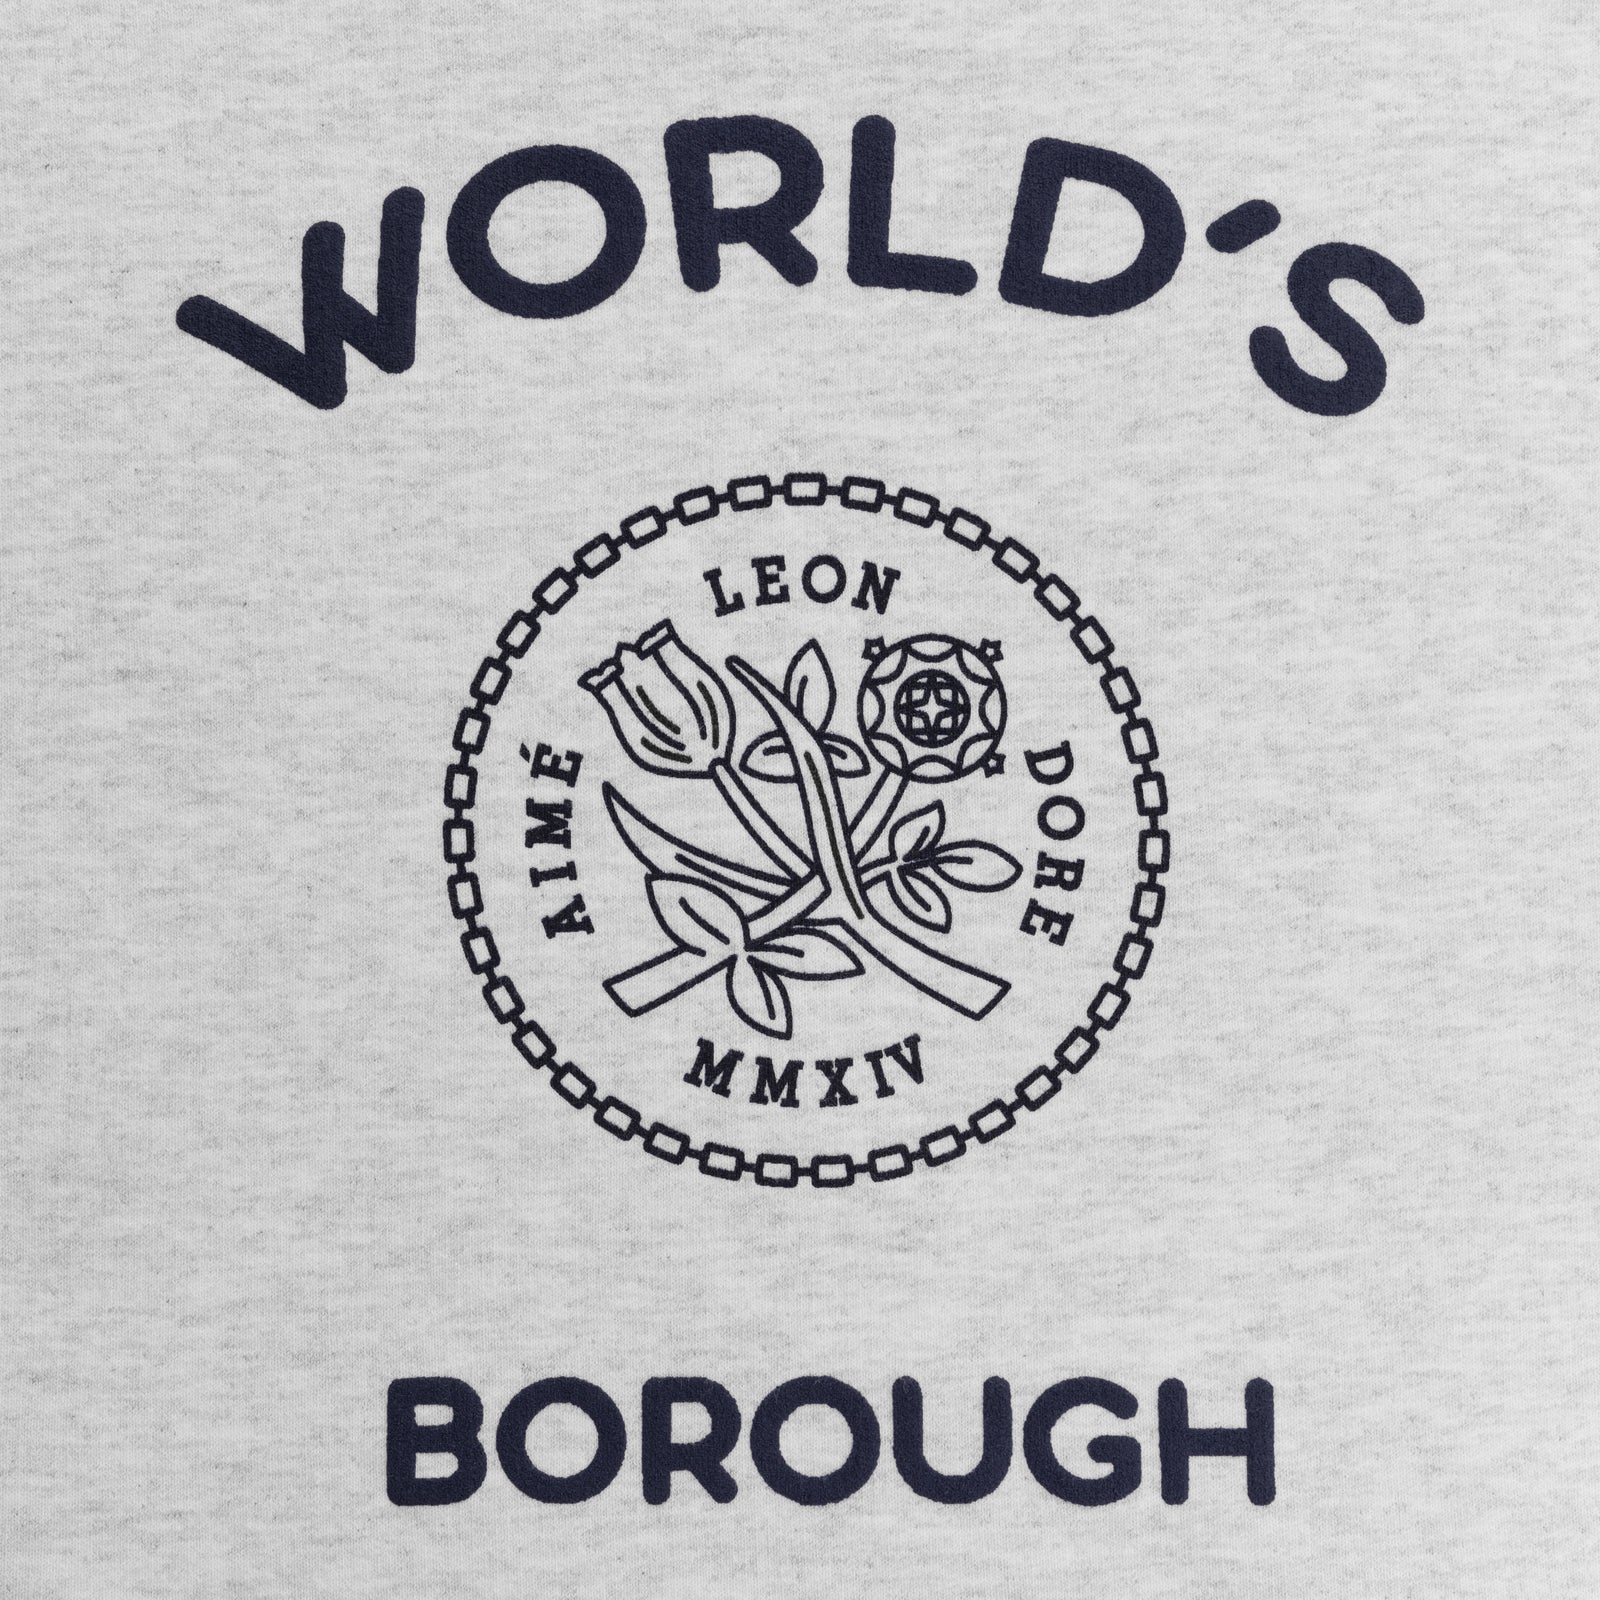 World's Borough Hoodie